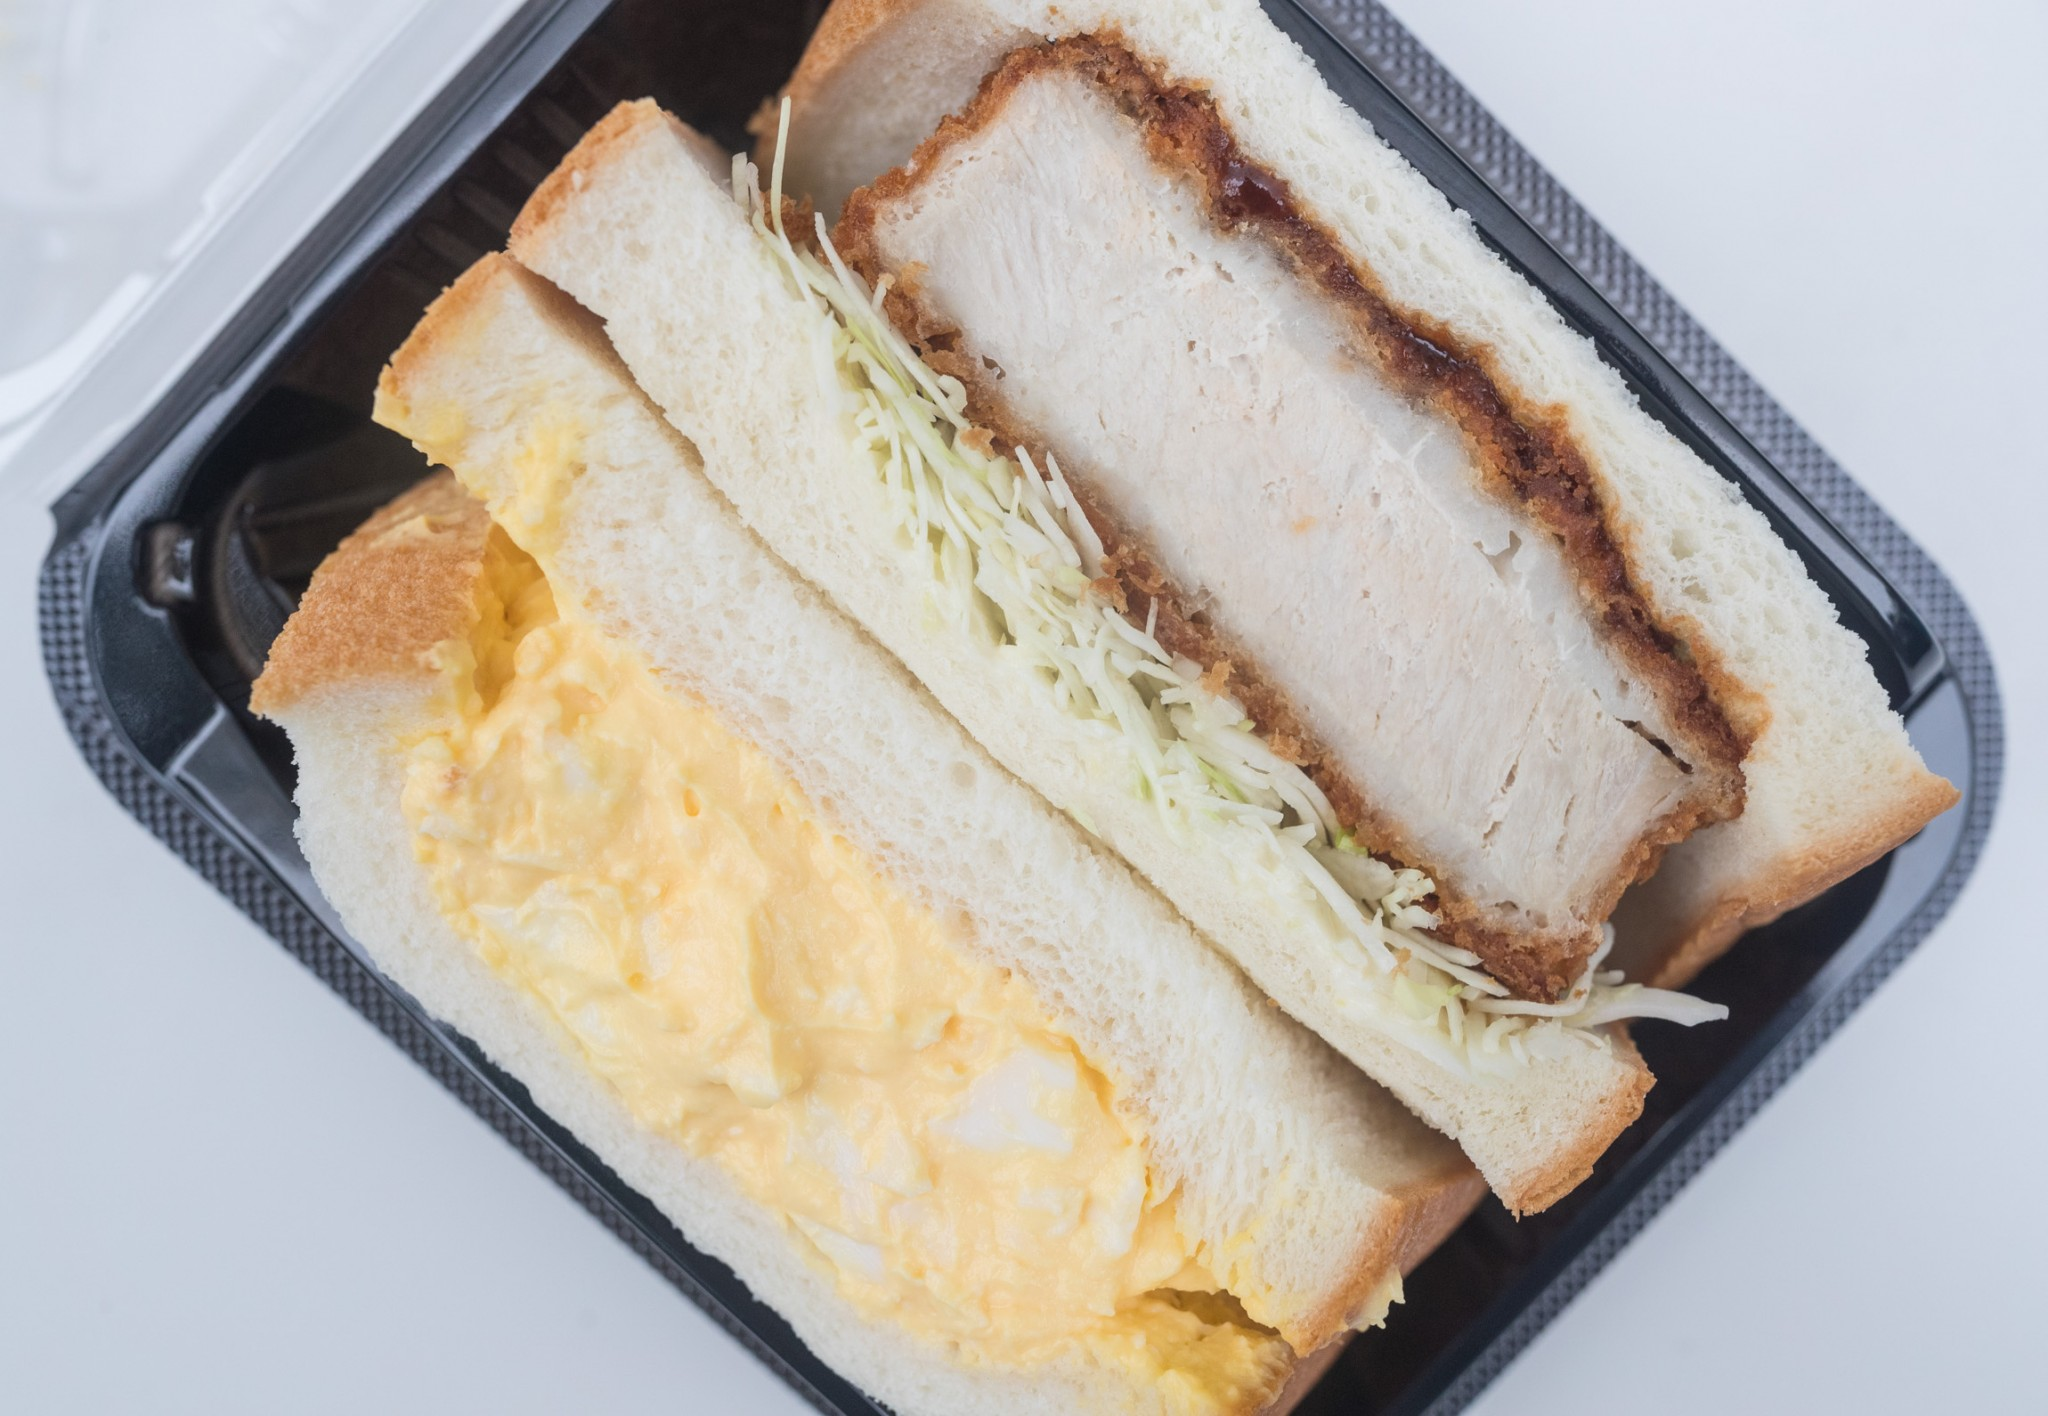 At Lawson, there is no shortage of freshly made sandwiches for sale. At the top of our list: The pork cutlet and egg salad sandwich combo.